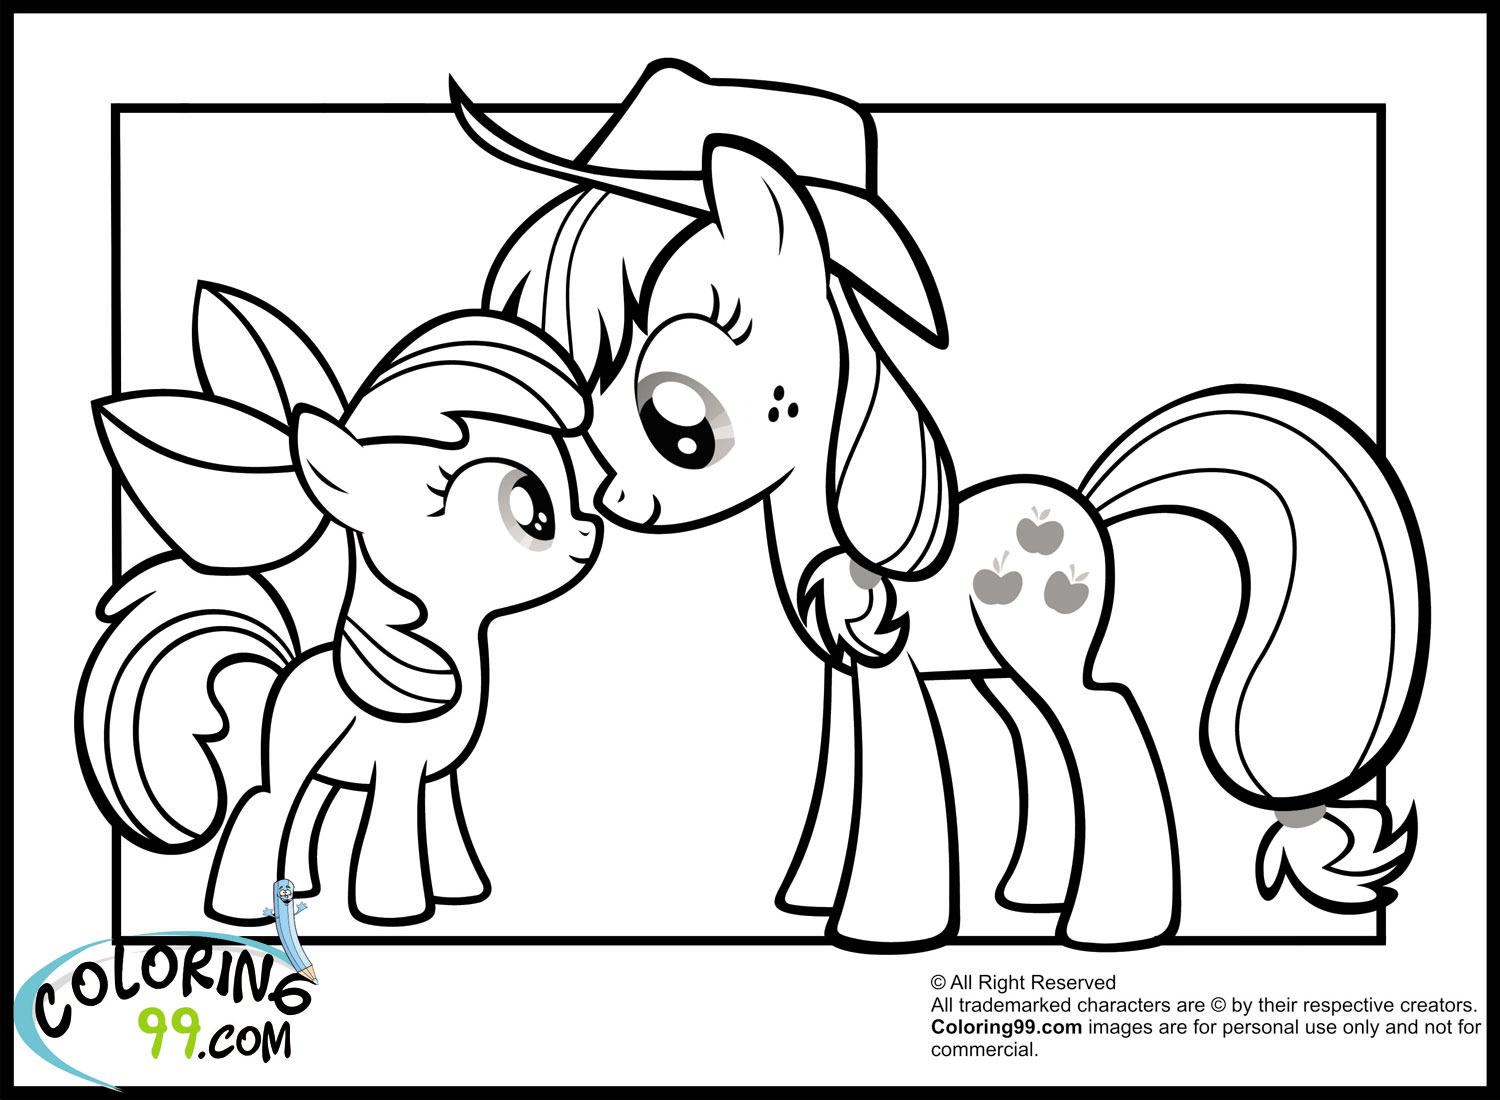 y little pony coloring pages - photo #30